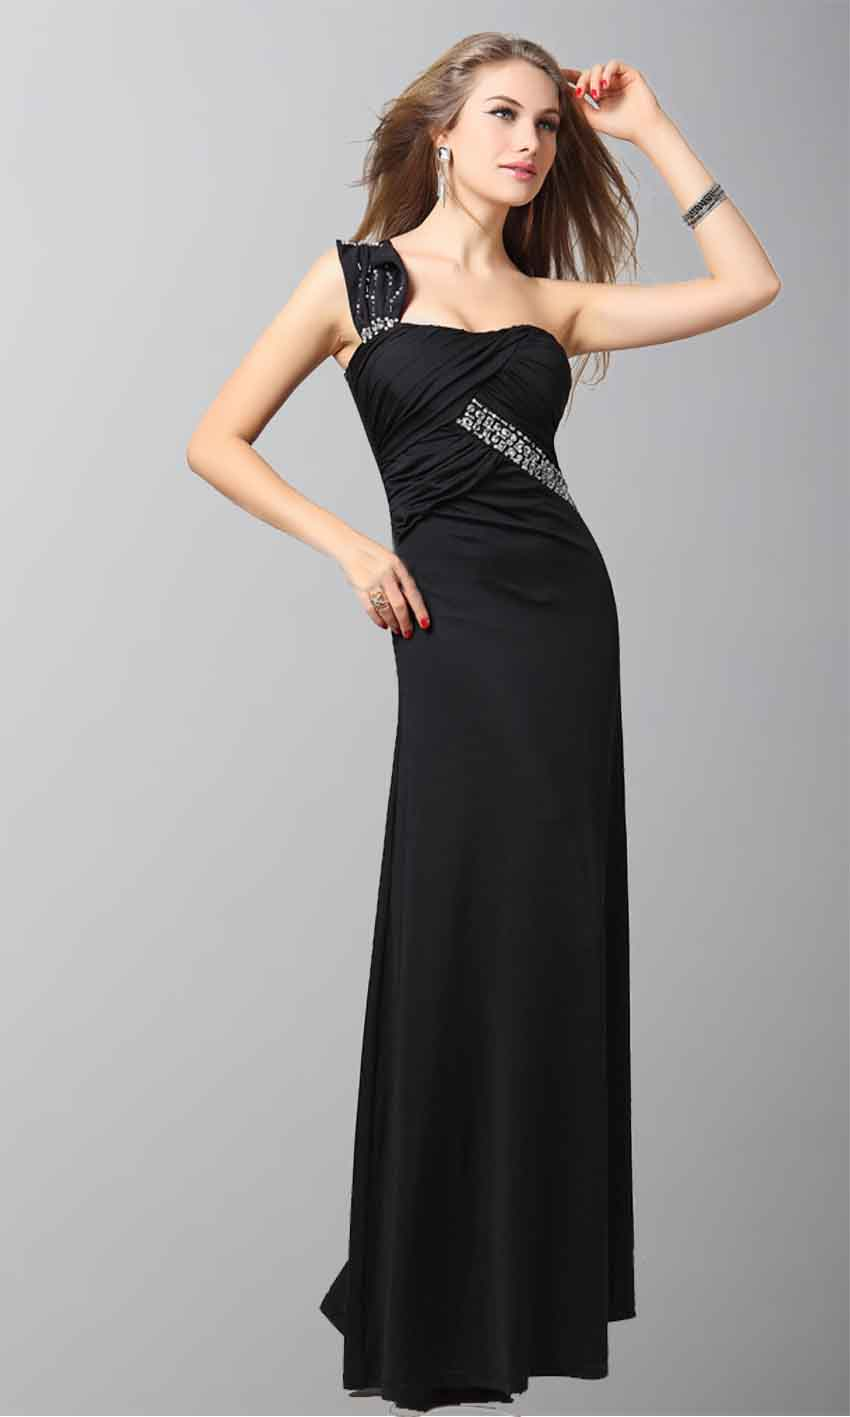 Tight Black One Shoulder Evening Dress One Sale KSP056 [KSP056] - £97.00 : Cheap Prom Dresses Uk, Bridesmaid Dresses, 2014 Prom & Evening Dresses, Look for cheap elegant prom dresses 2014, cocktail gowns, or dresses for special occasions? kissprom.co.uk offers various bridesmaid dresses, evening dress, free shipping to UK etc.